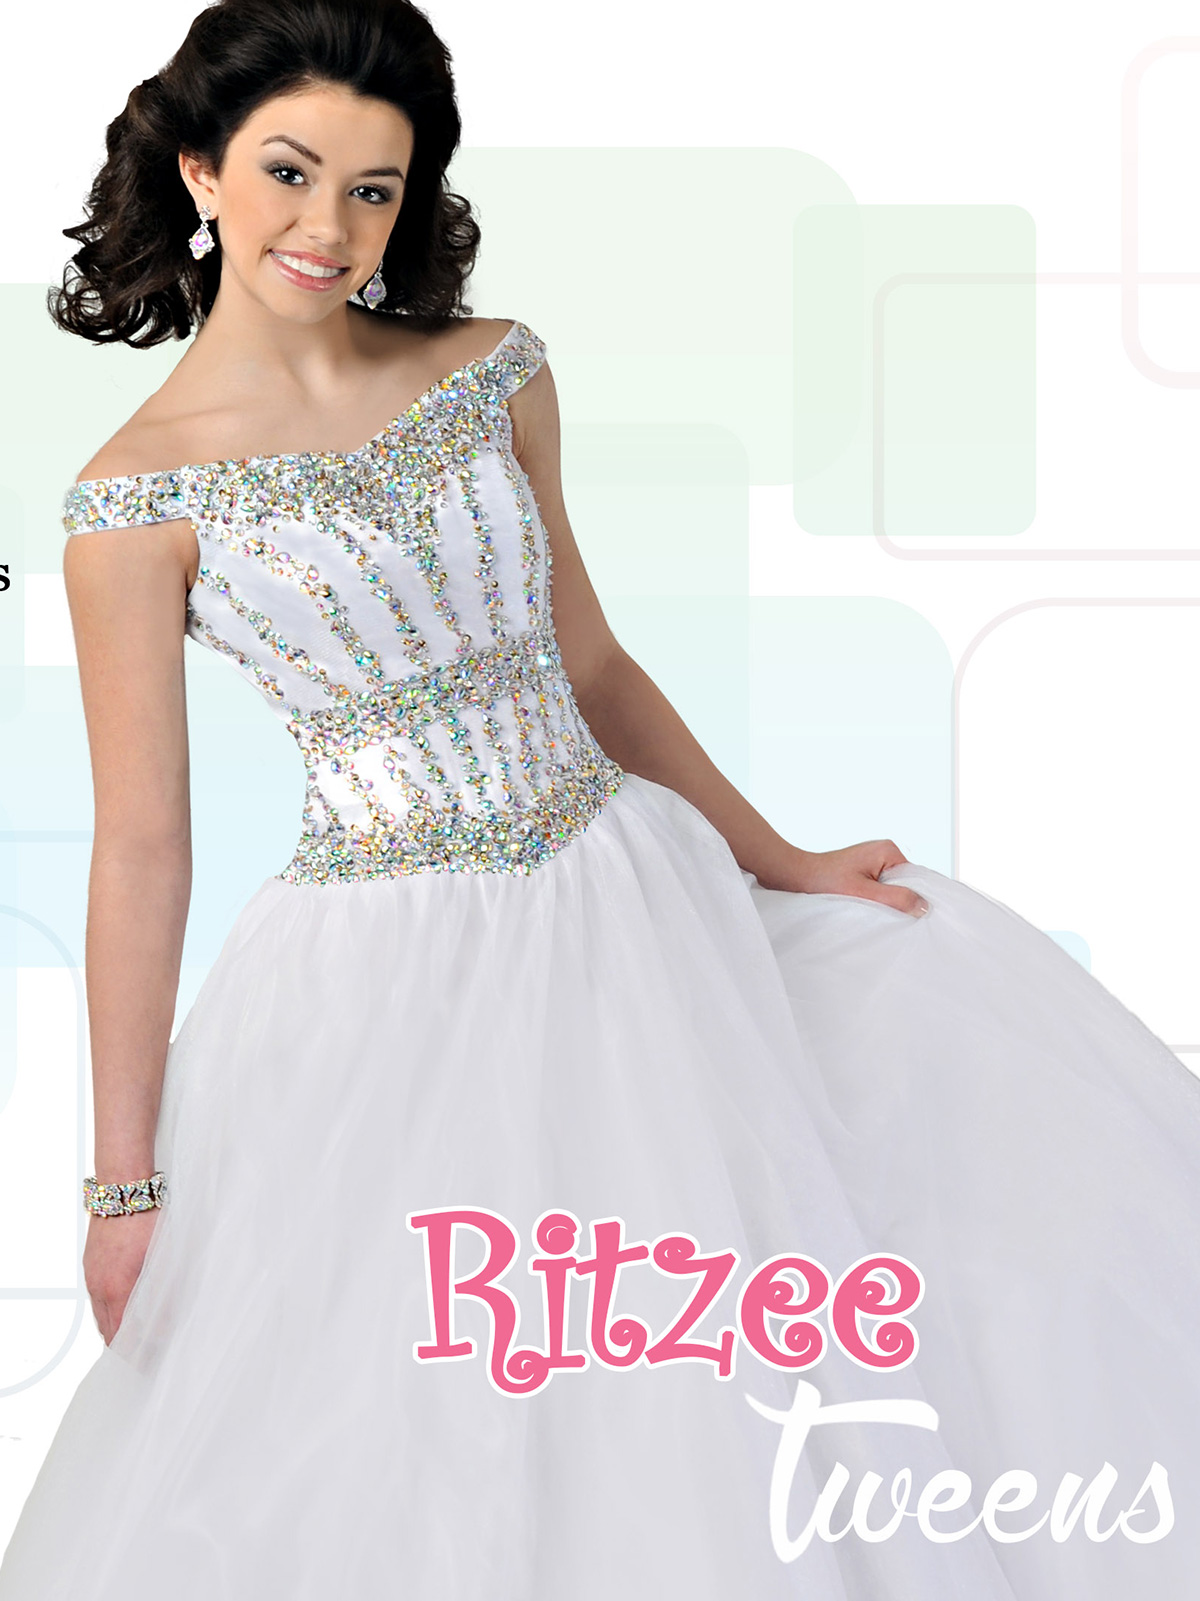 Winning Ritzee Junior High Pageant Dress T703|PageantDesigns.com